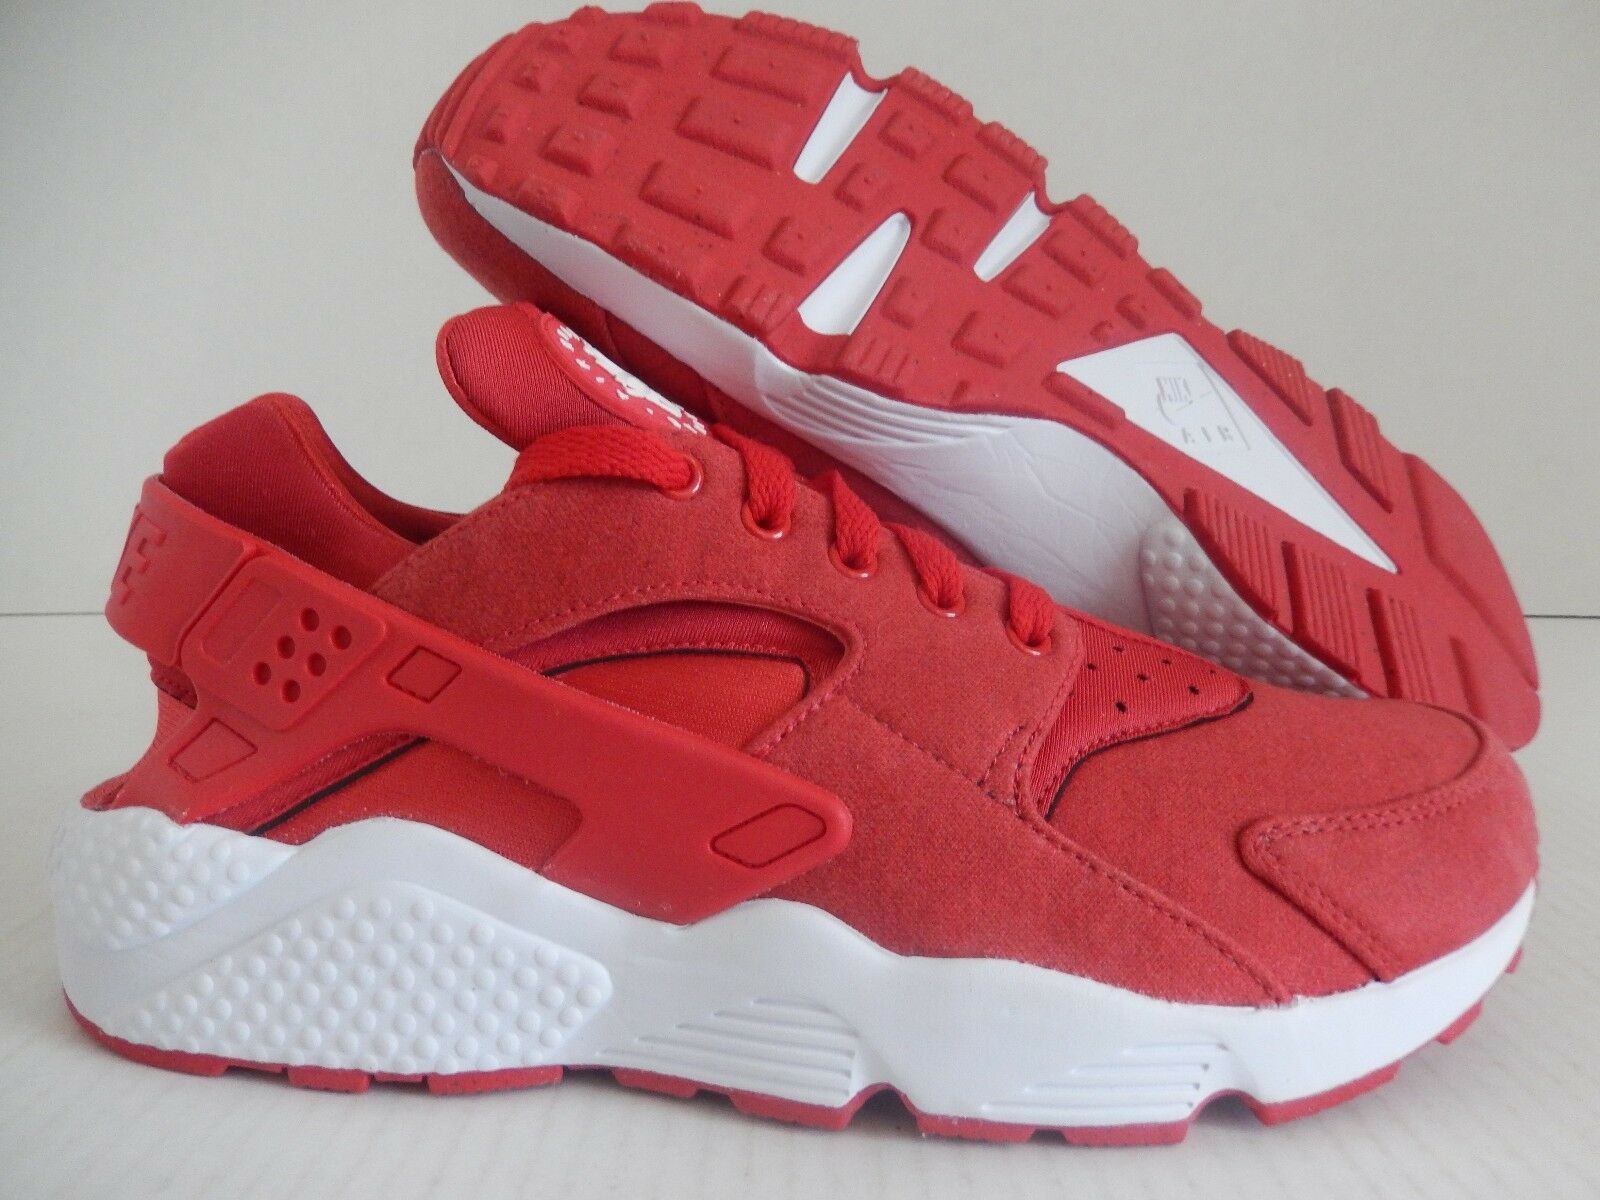 MENS NIKE AIR HUARACHE ID RED-WHITE Price reduction Great discount